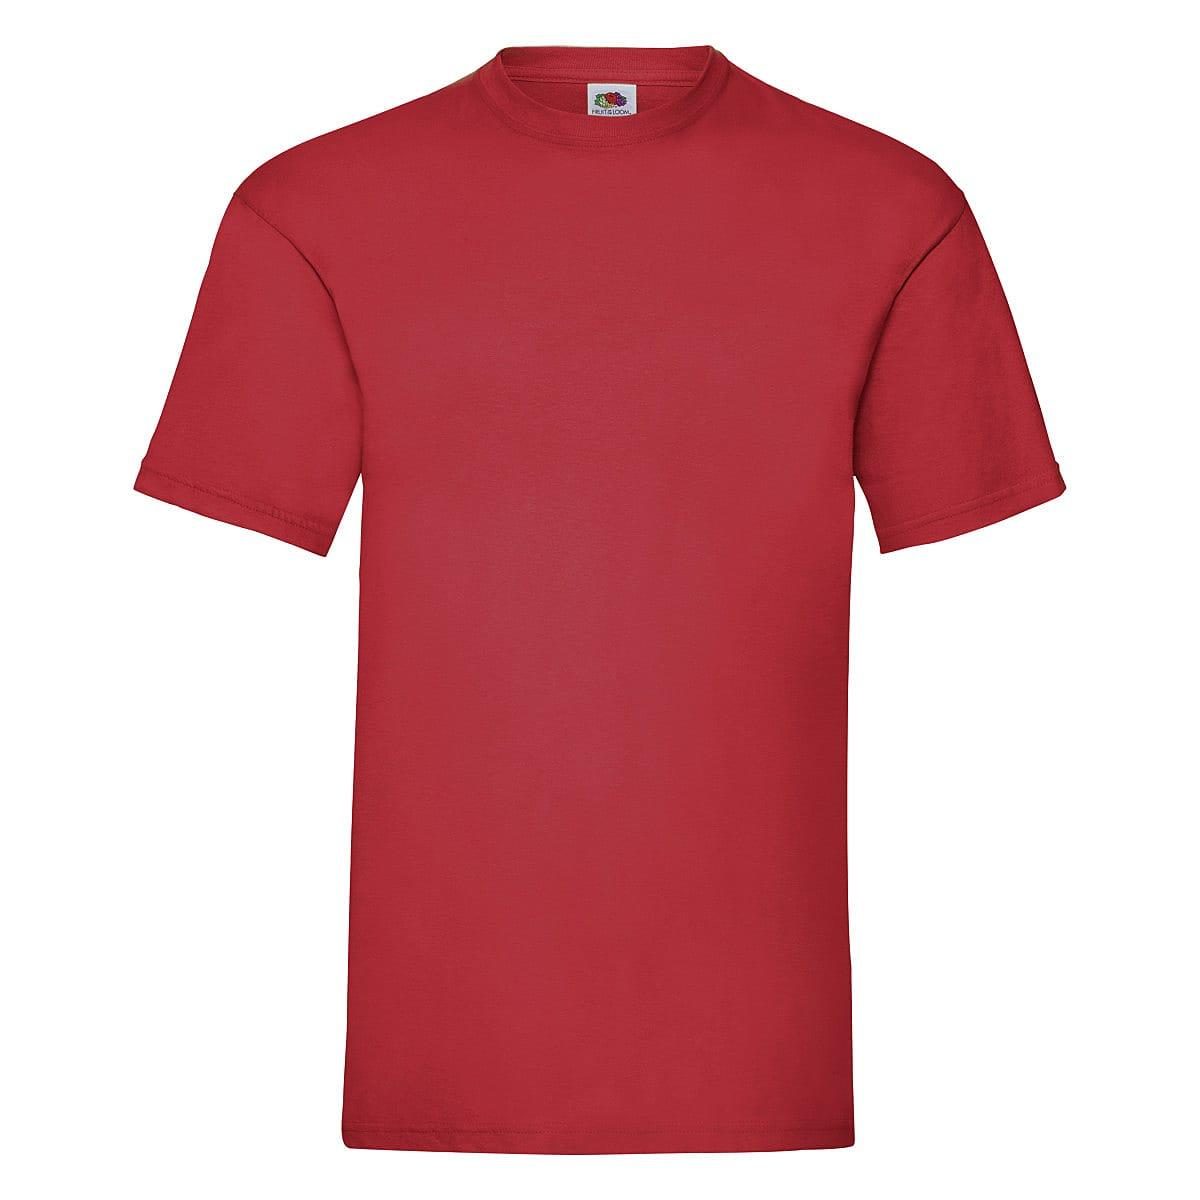 Fruit Of The Loom Valueweight T-Shirt in Red (Product Code: 61036)